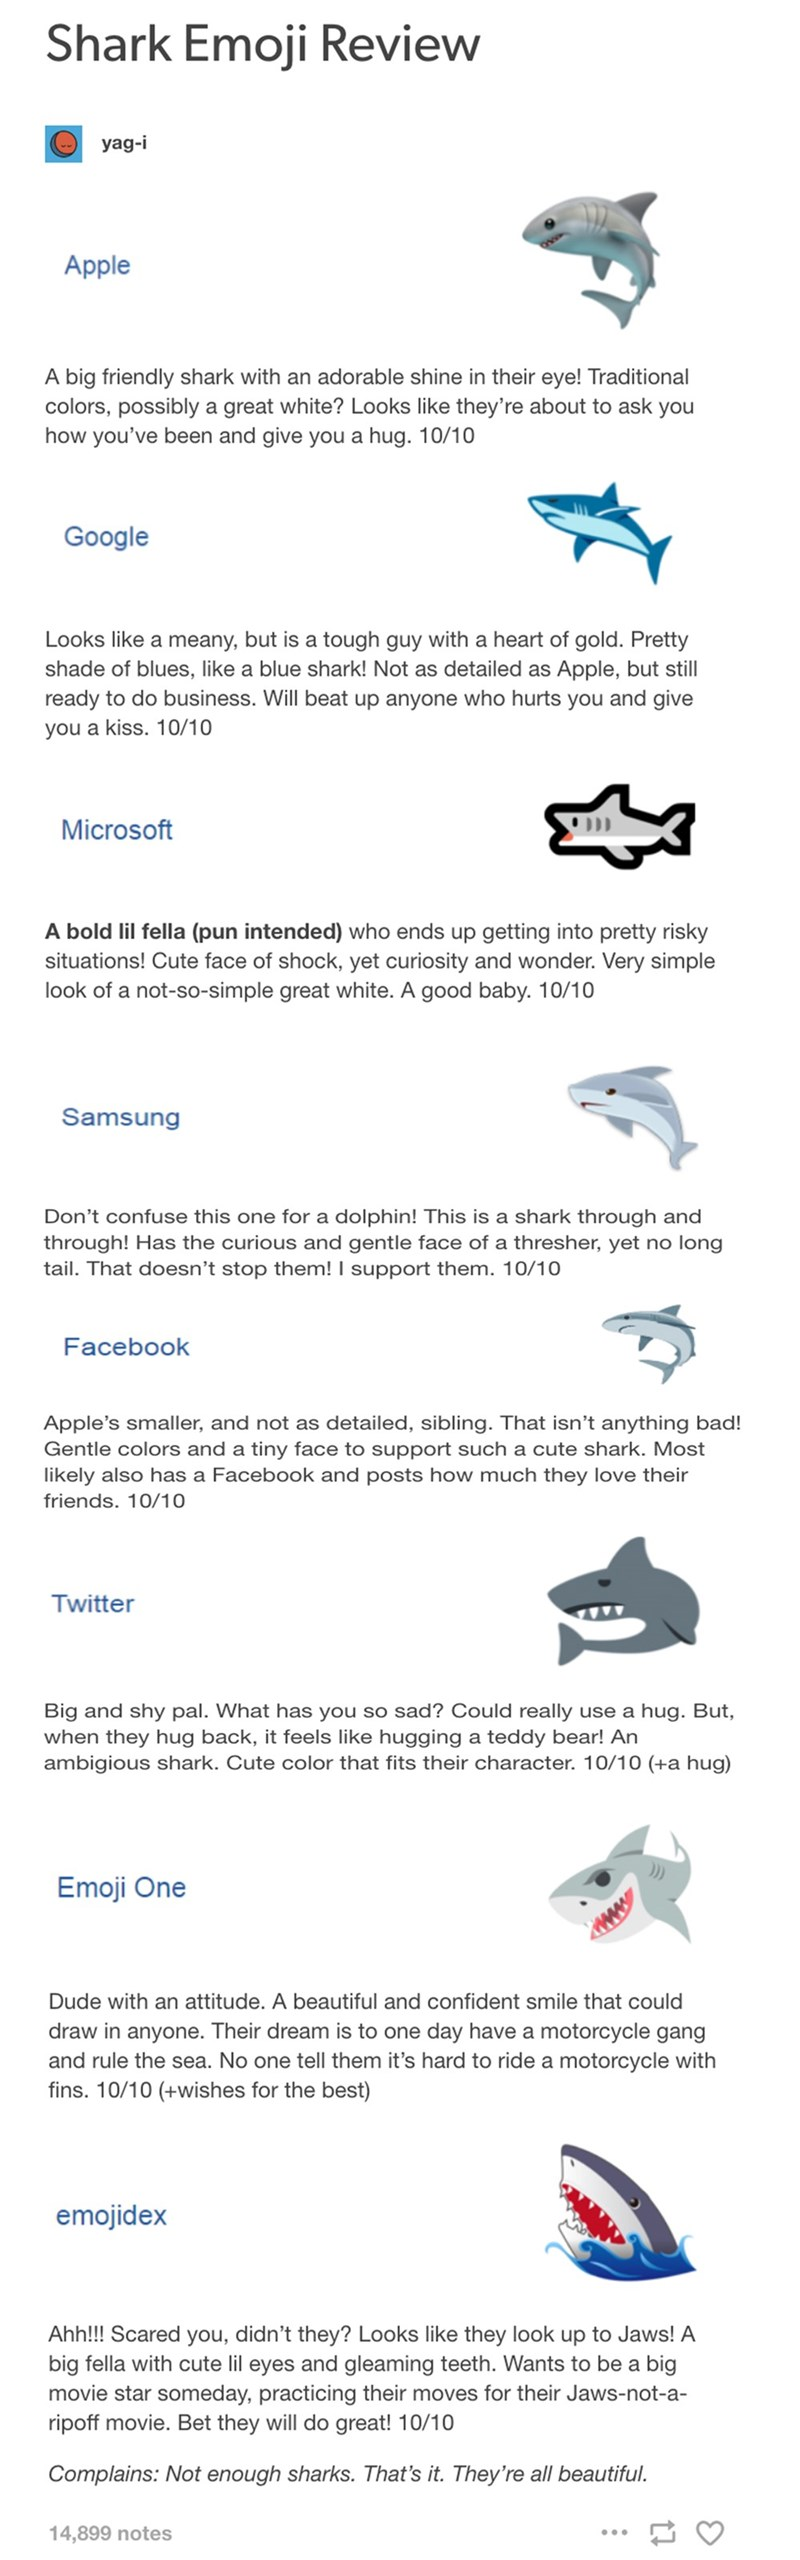 Text - Shark Emoji Review yag-i Apple A big friendly shark with an adorable shine in their eye! Traditional colors, possibly a great white? Looks like they're about to ask you how you've been and give you a hug. 10/10 Google Looks like a meany, but is a tough guy with a heart of gold. Pretty shade of blues, like a blue shark! Not as detailed as Apple, but still ready to do business. Will beat up anyone who hurts you and give you a kiss. 10/10 DD Microsoft A bold lil fella (pun intended) who ends